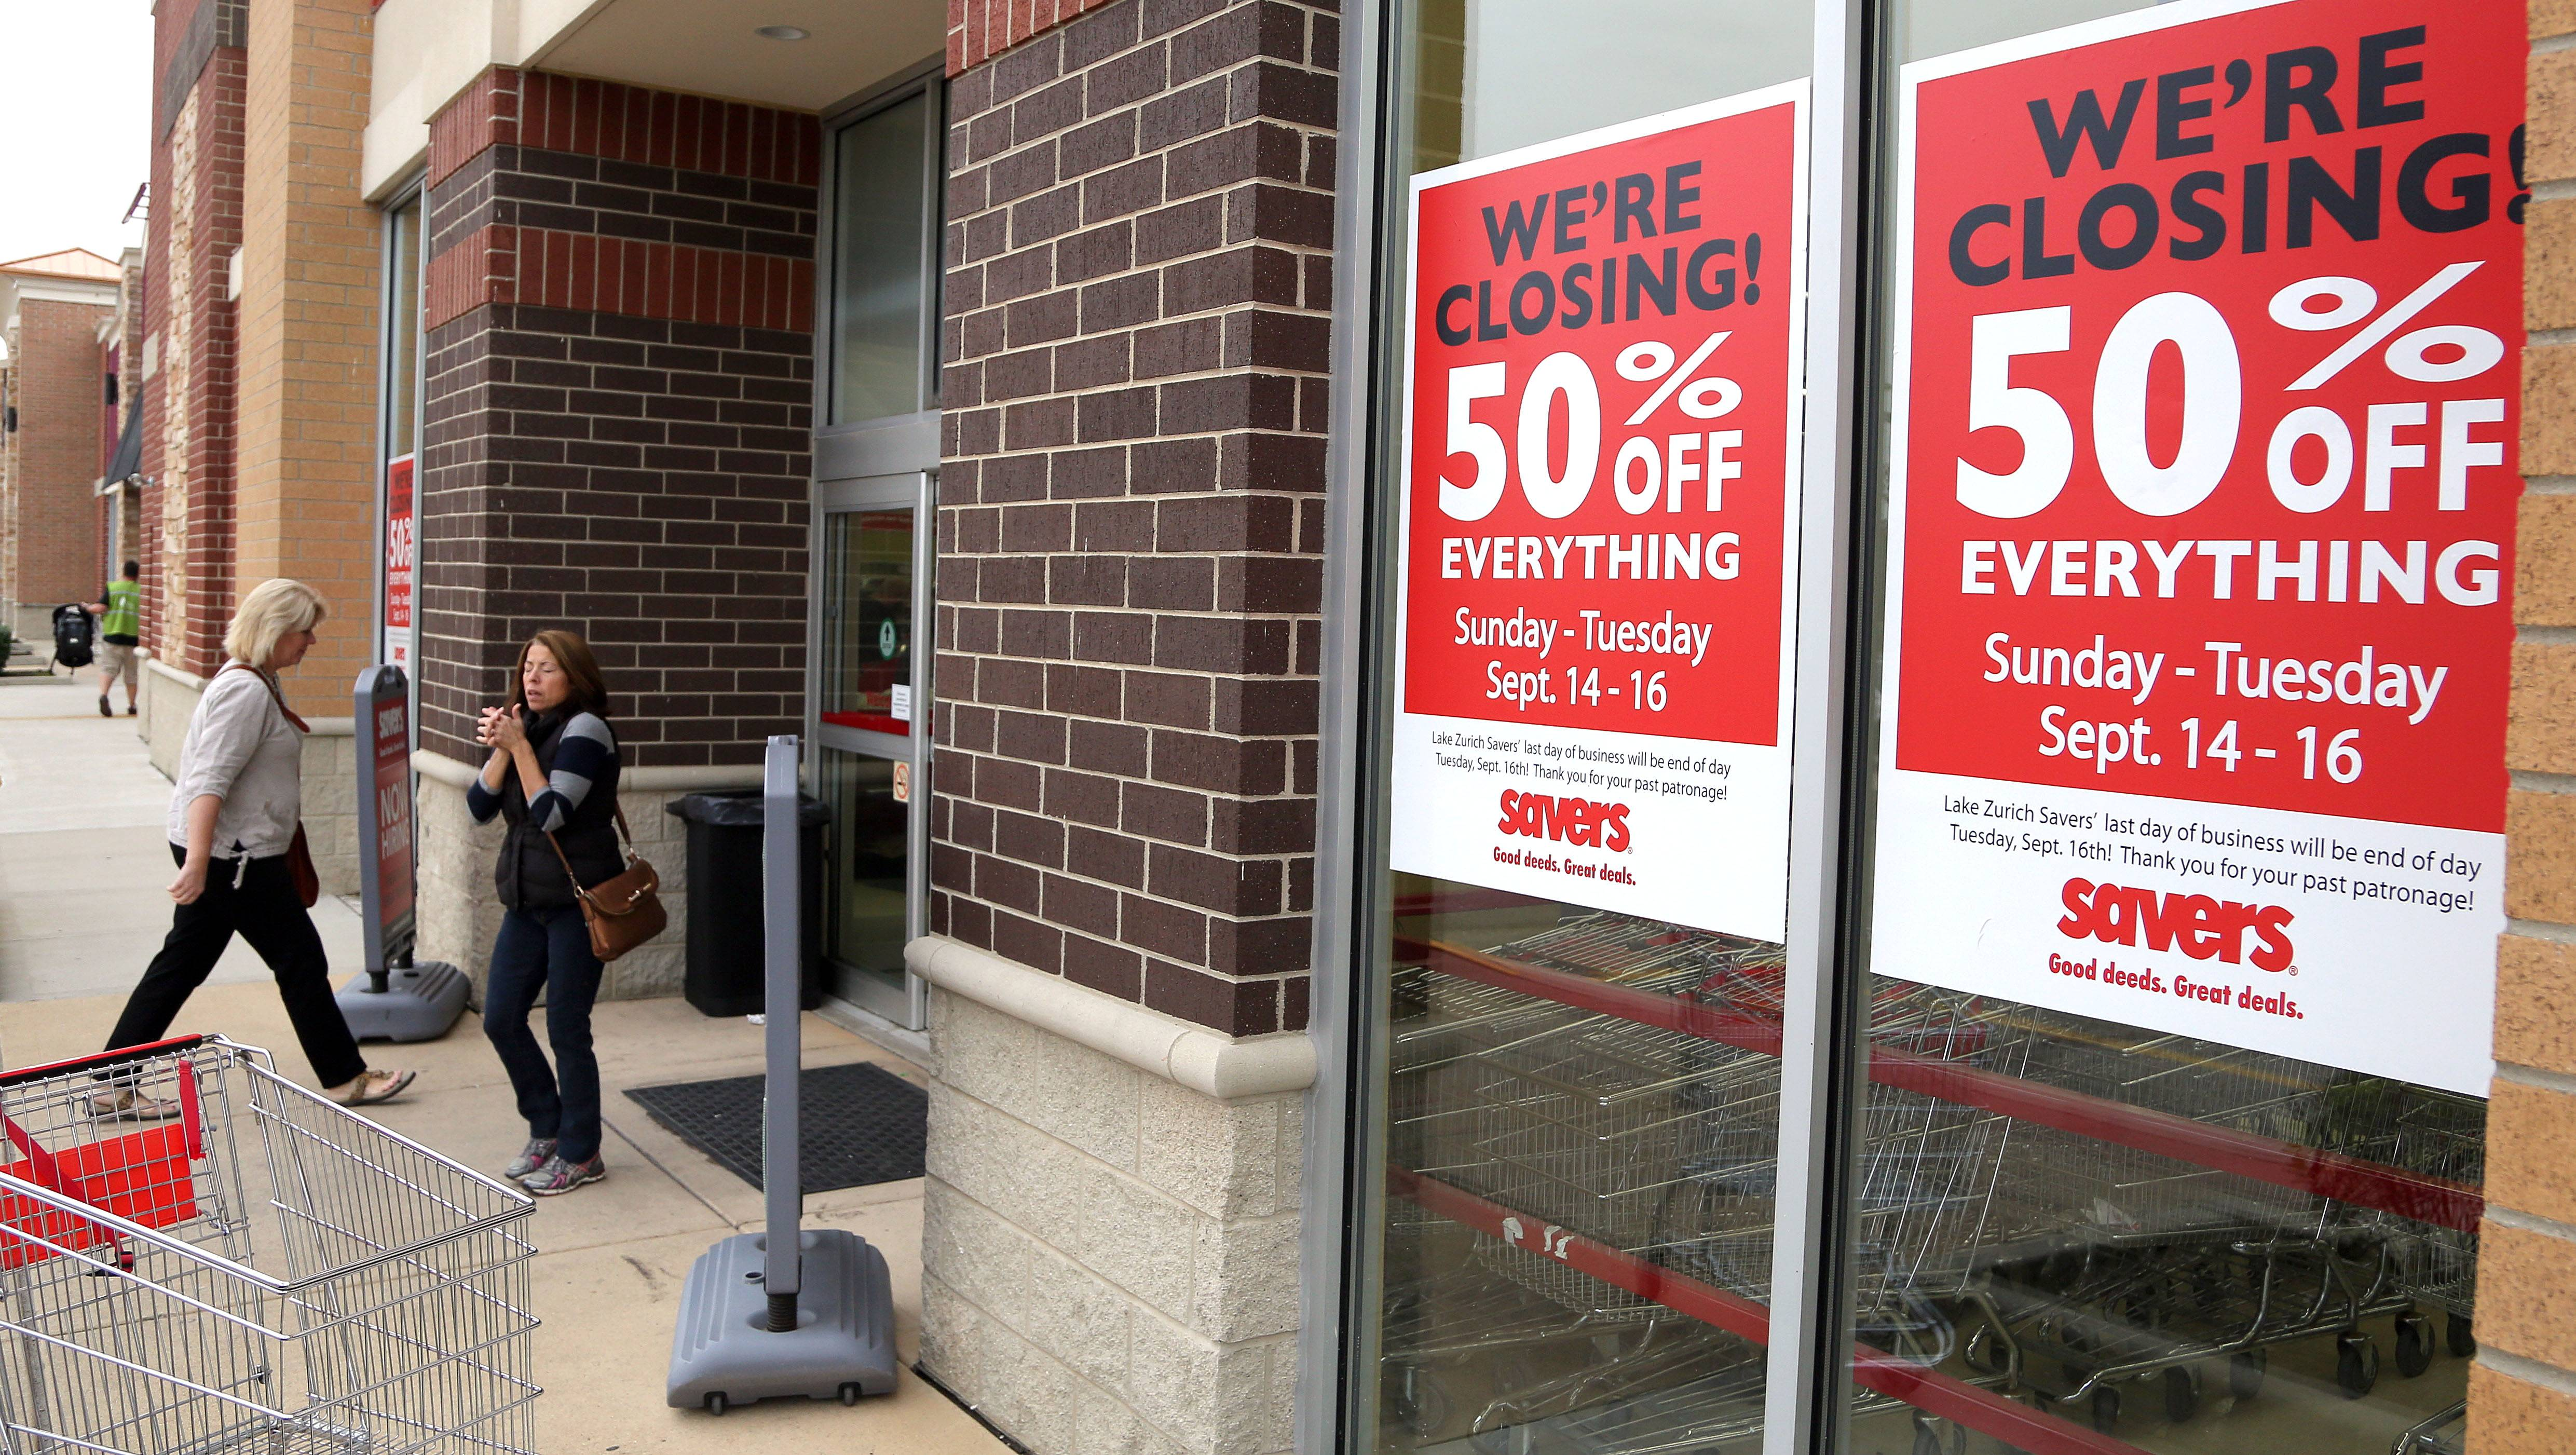 The Savers thrift store in Lake Zurich will close Tuesday, along with the chain's store in St. Charles. Other Savers in the suburbs, including locations in Arlington Heights and Naperville, will remain open, and a new store is holding a grand opening this week in Glenview.